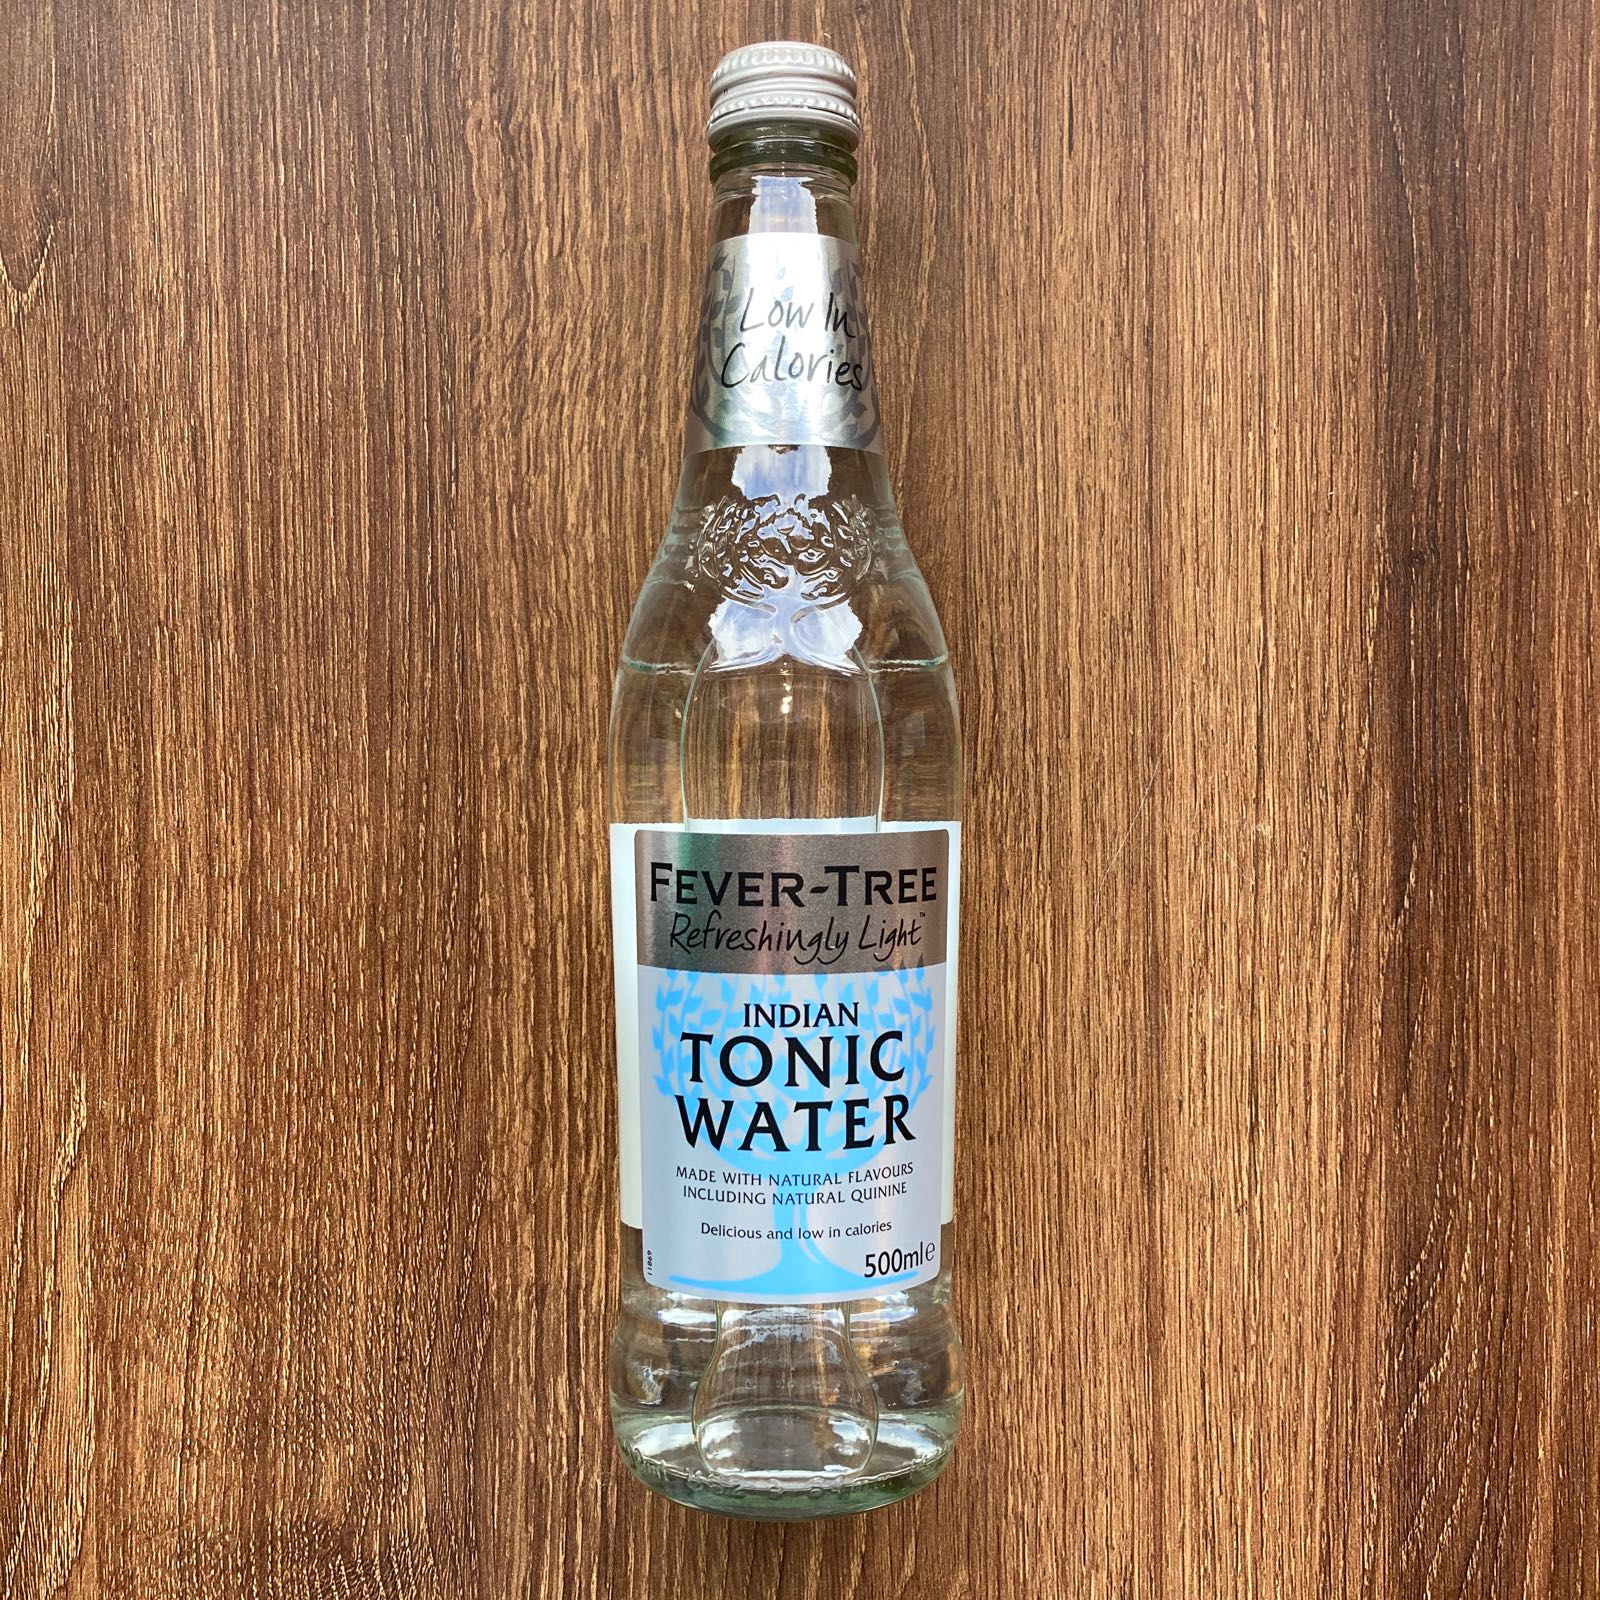 Indian Tonic Water Light - Fever-Tree